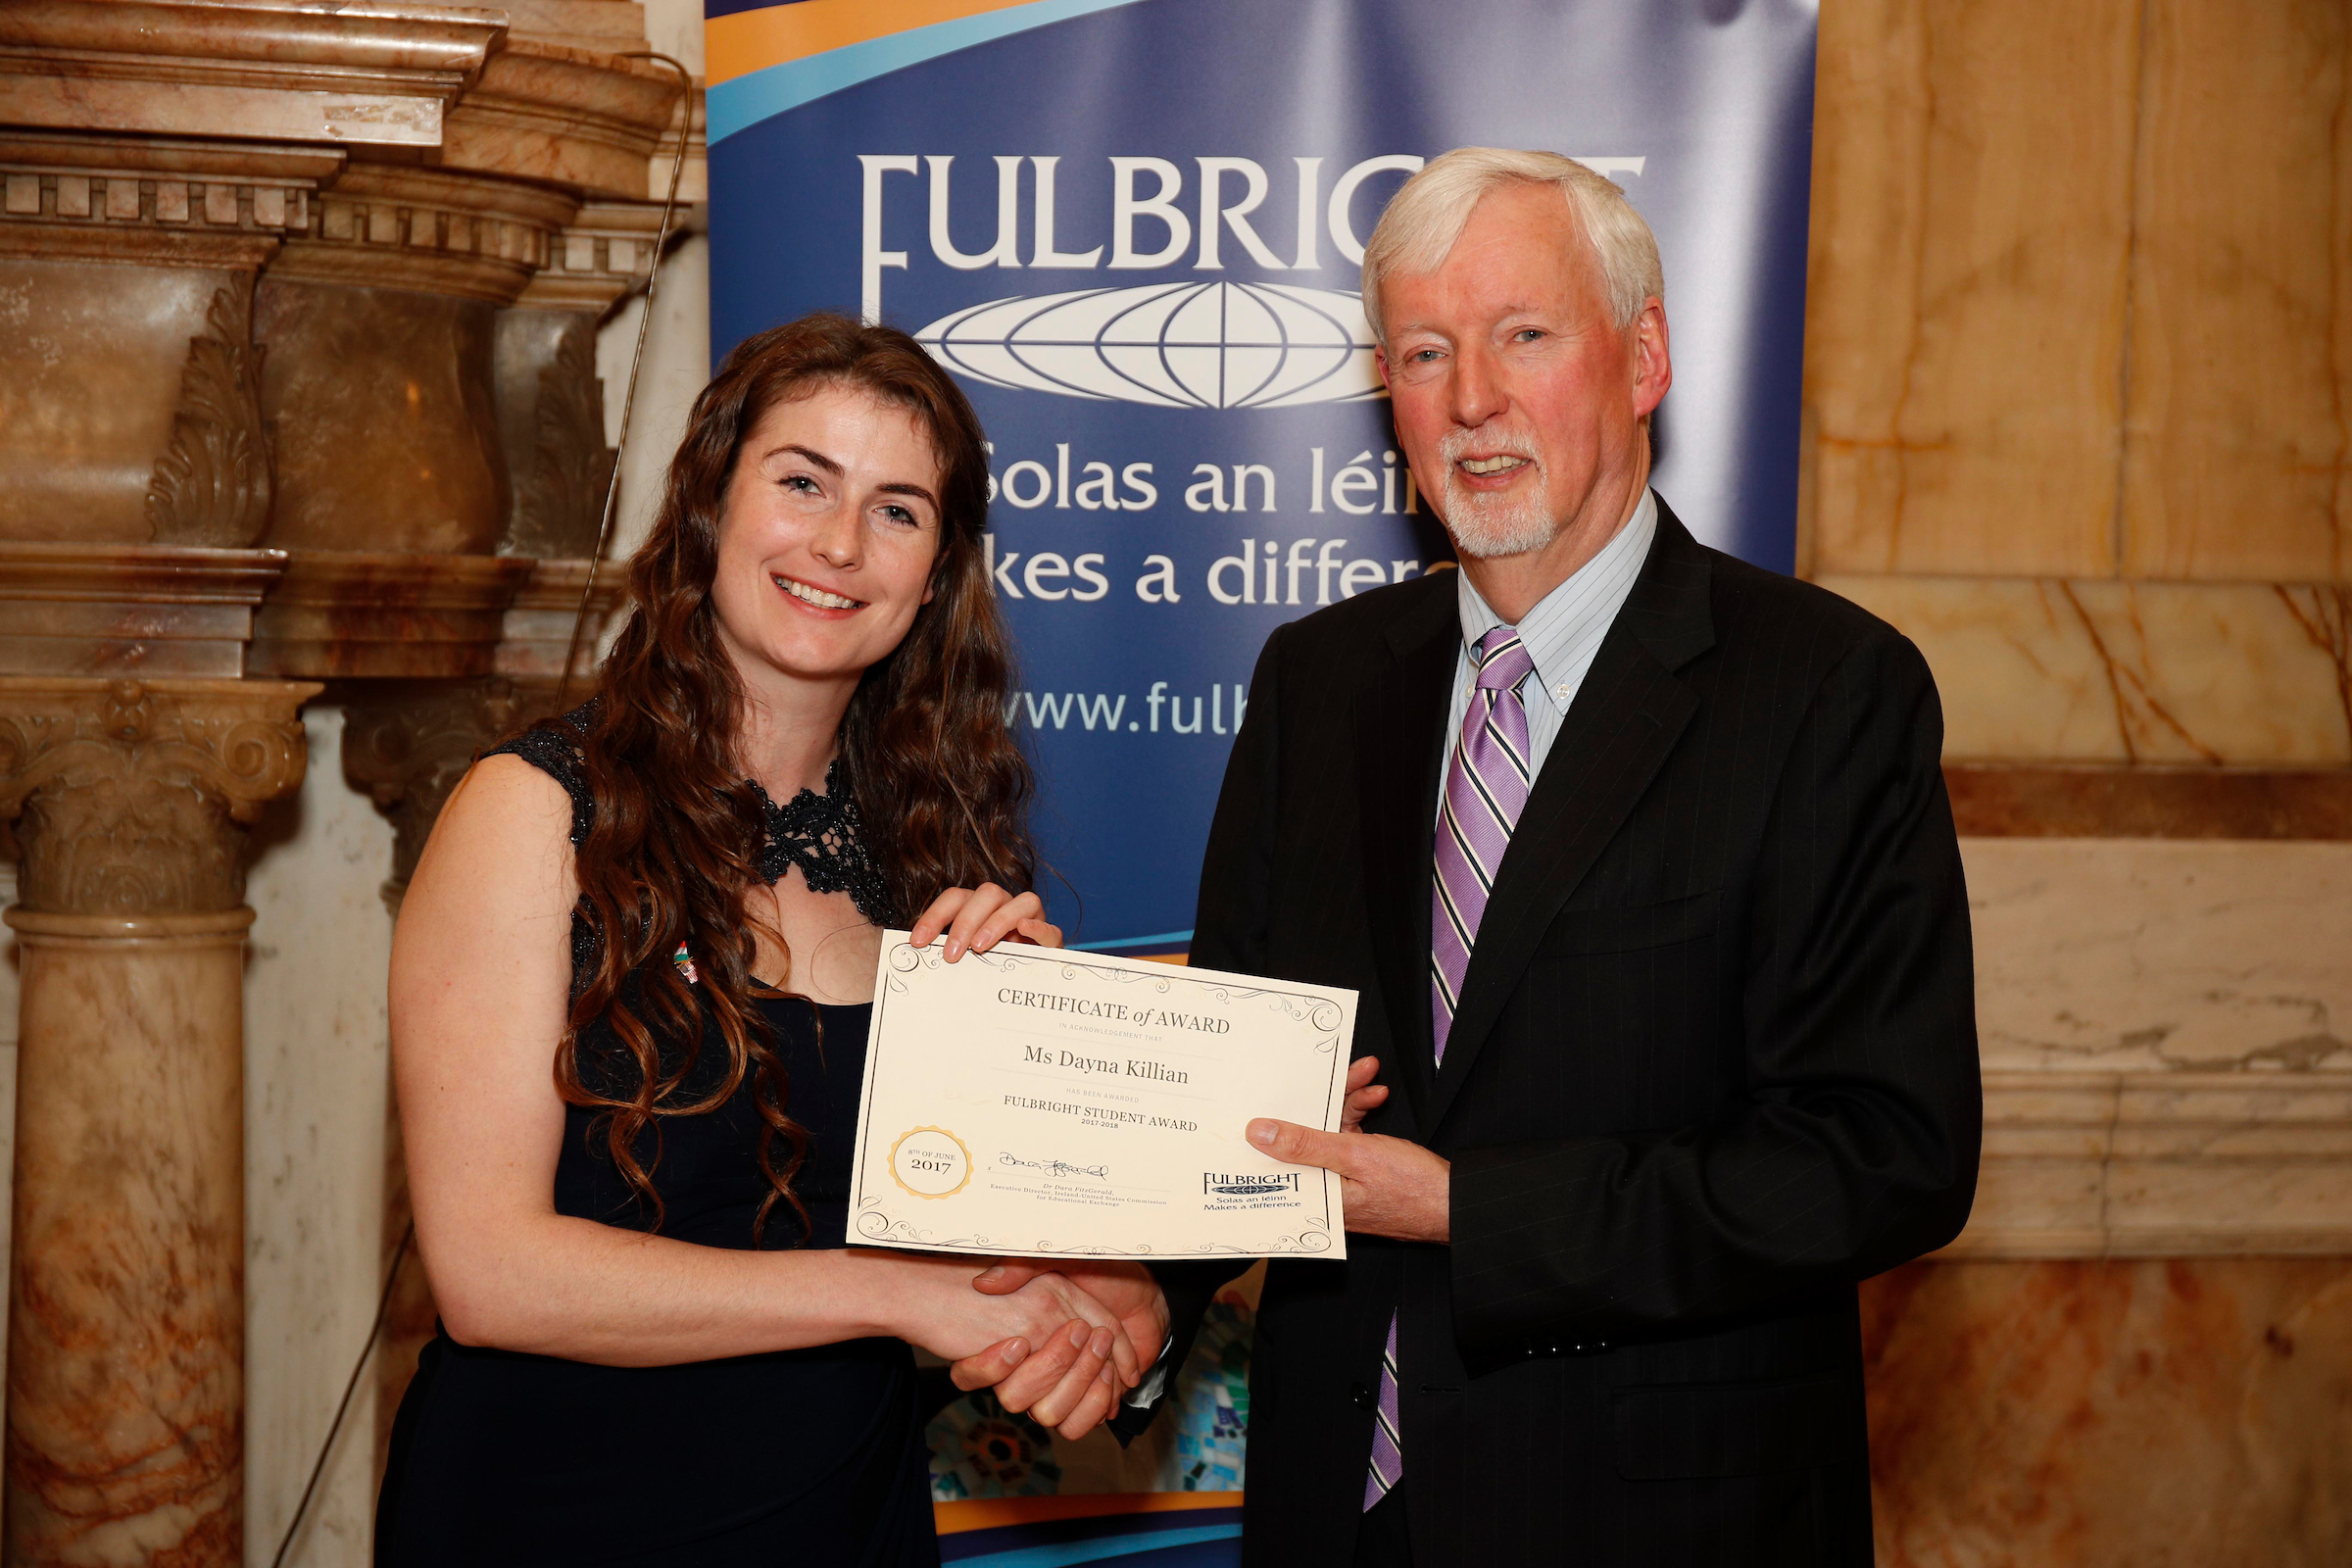 Pictured at the Fulbright awards announcement is Dayna Killian (left)